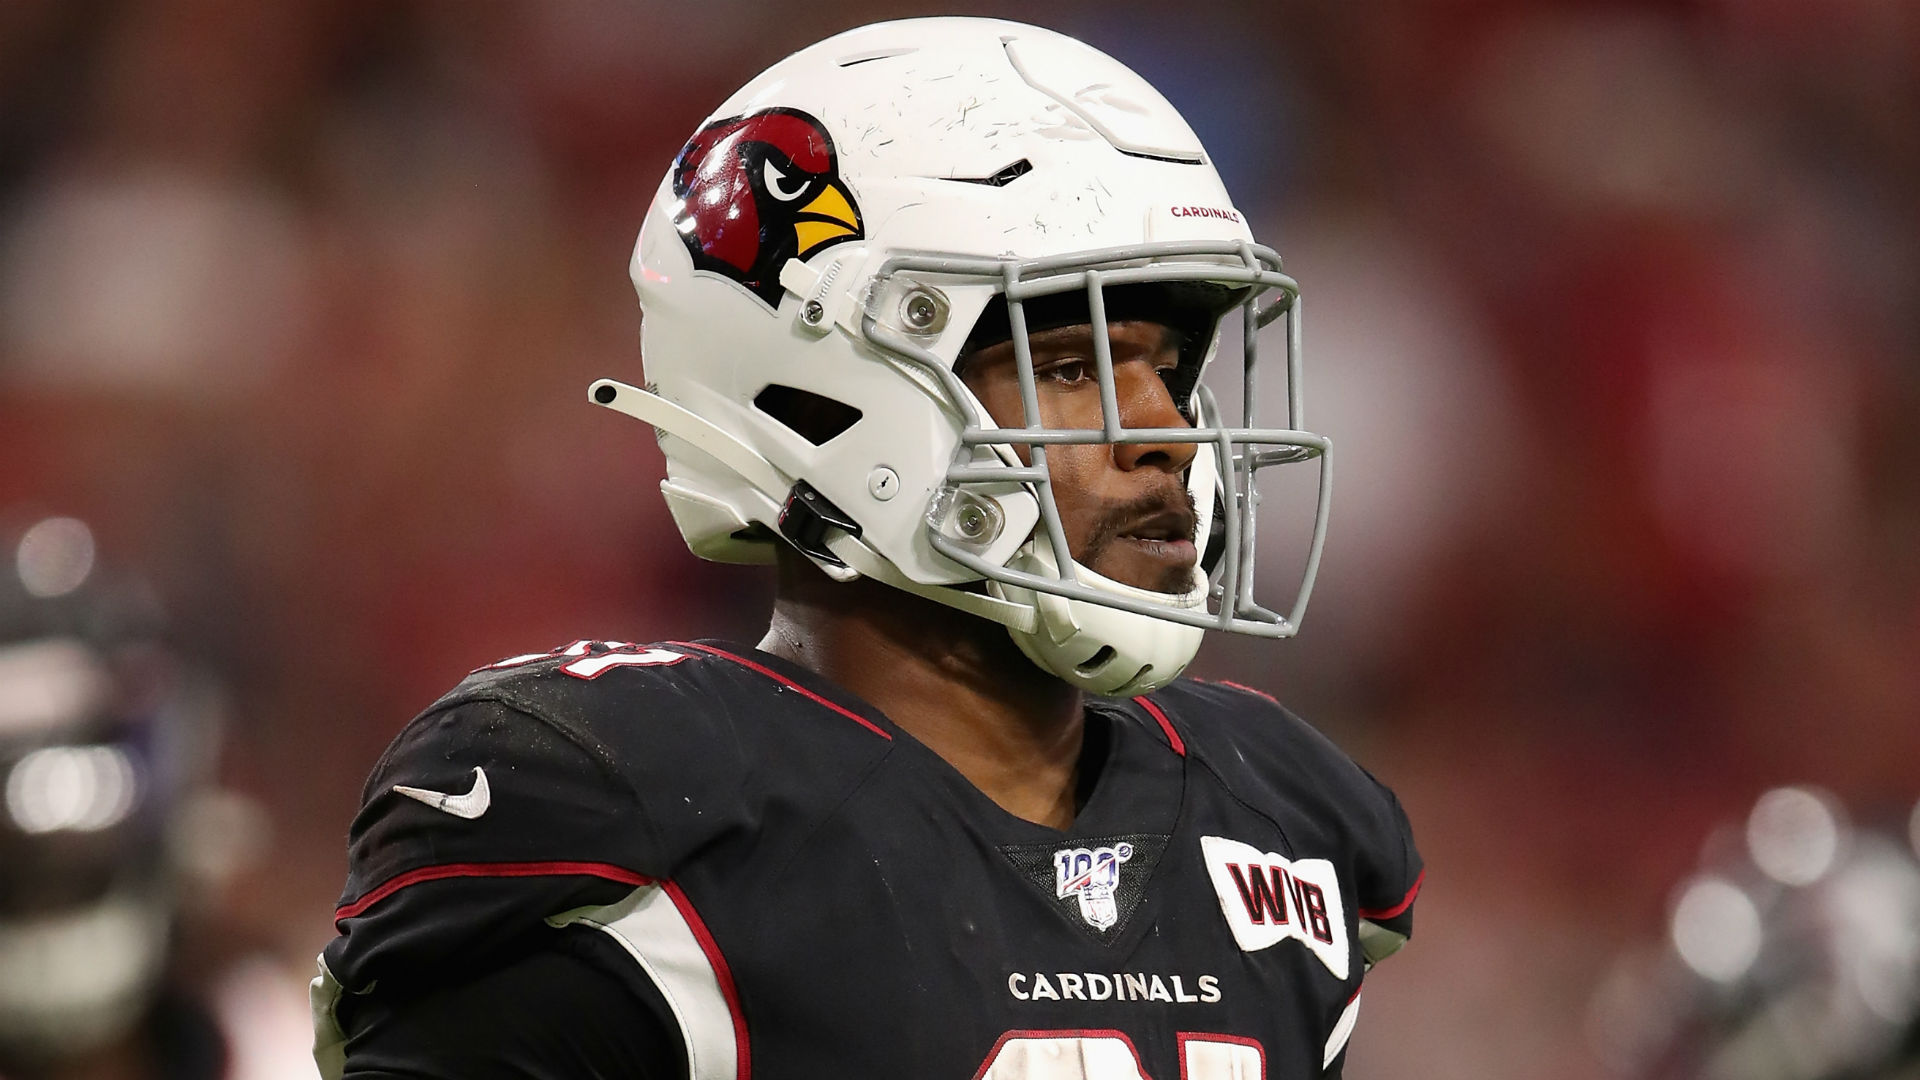 Why isn't David Johnson playing more? Kliff Kingsbury's shrewd move has fantasy owners upset, Cardinals winning